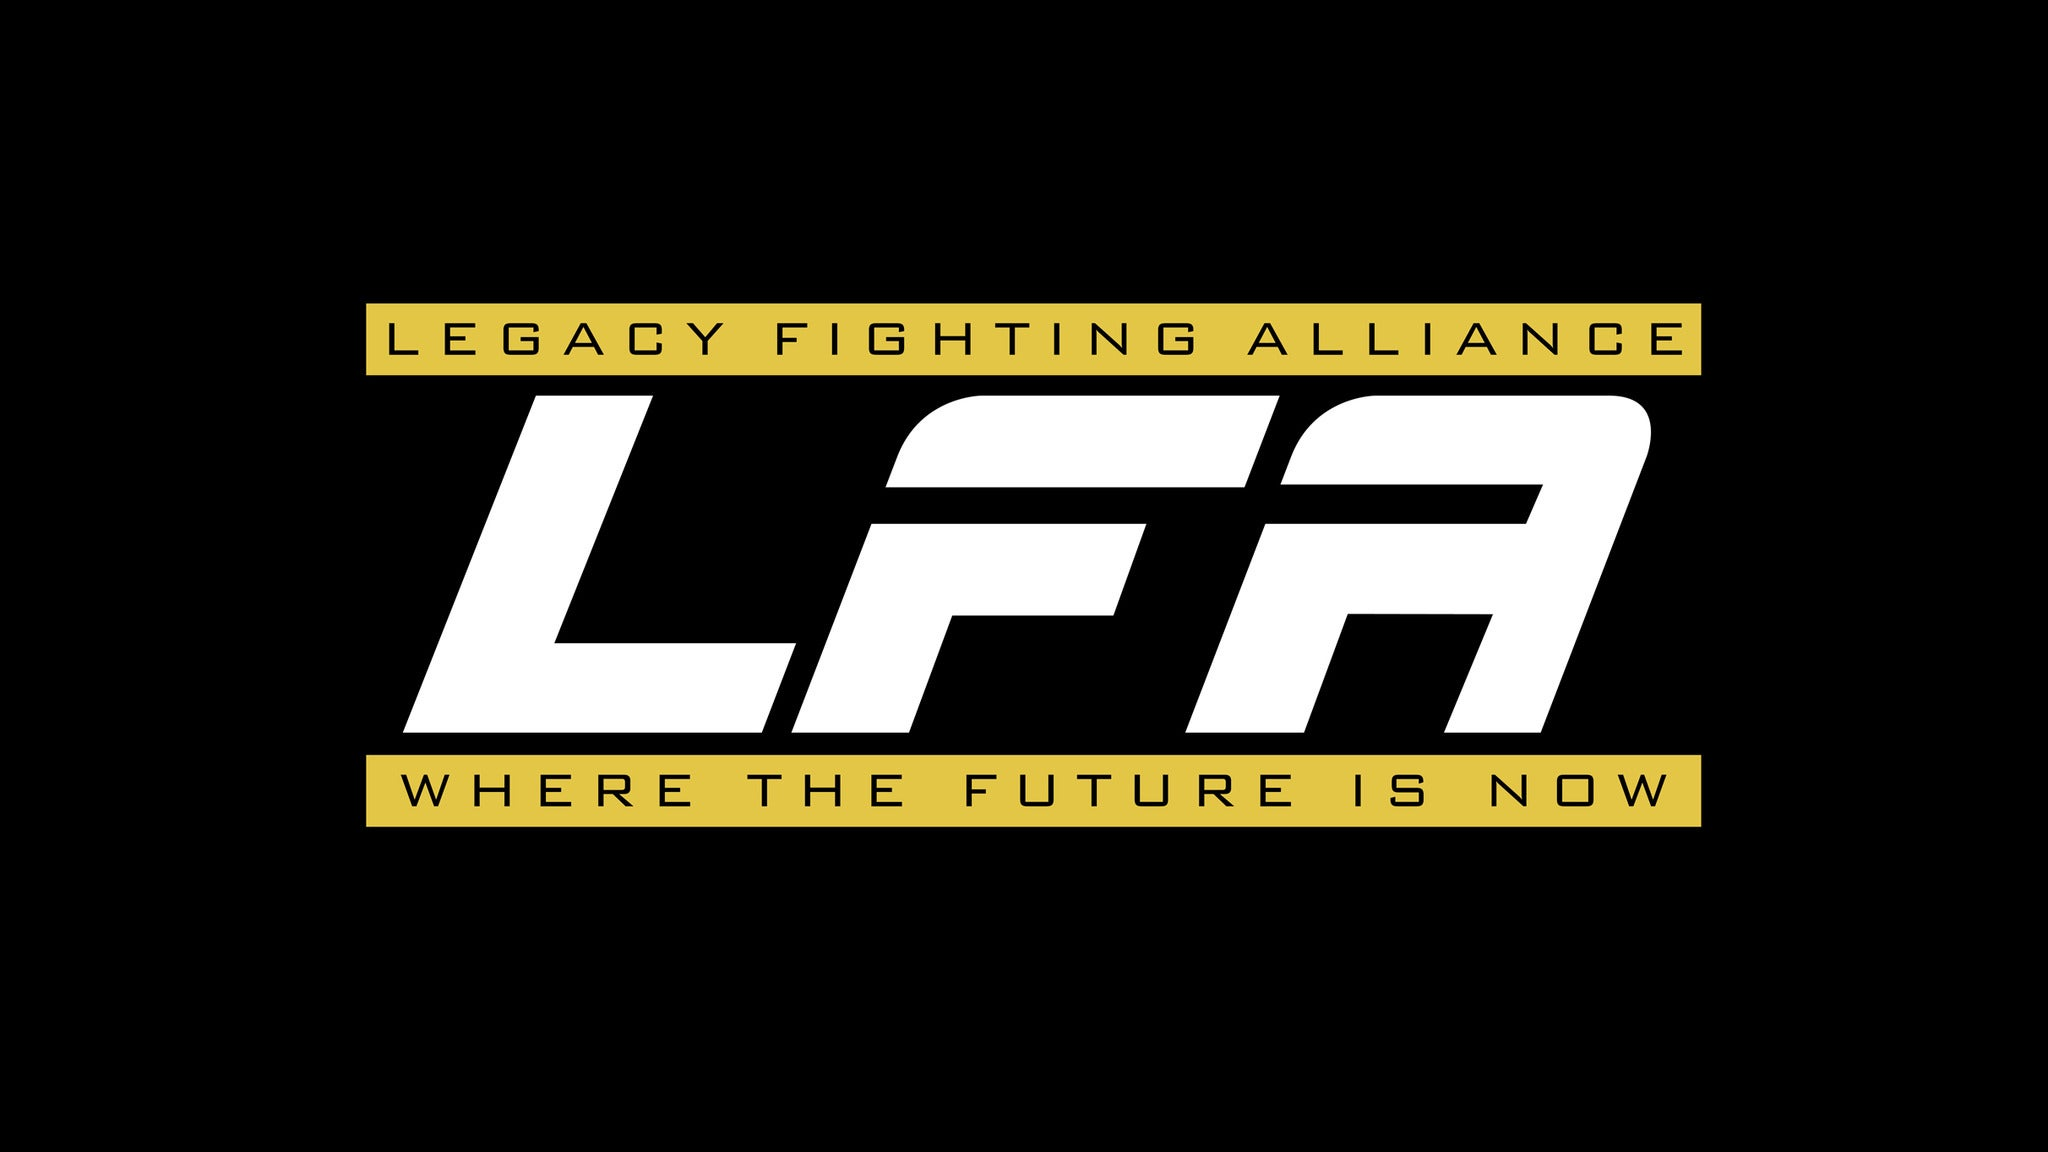 Legacy Fighting Alliance - LFA